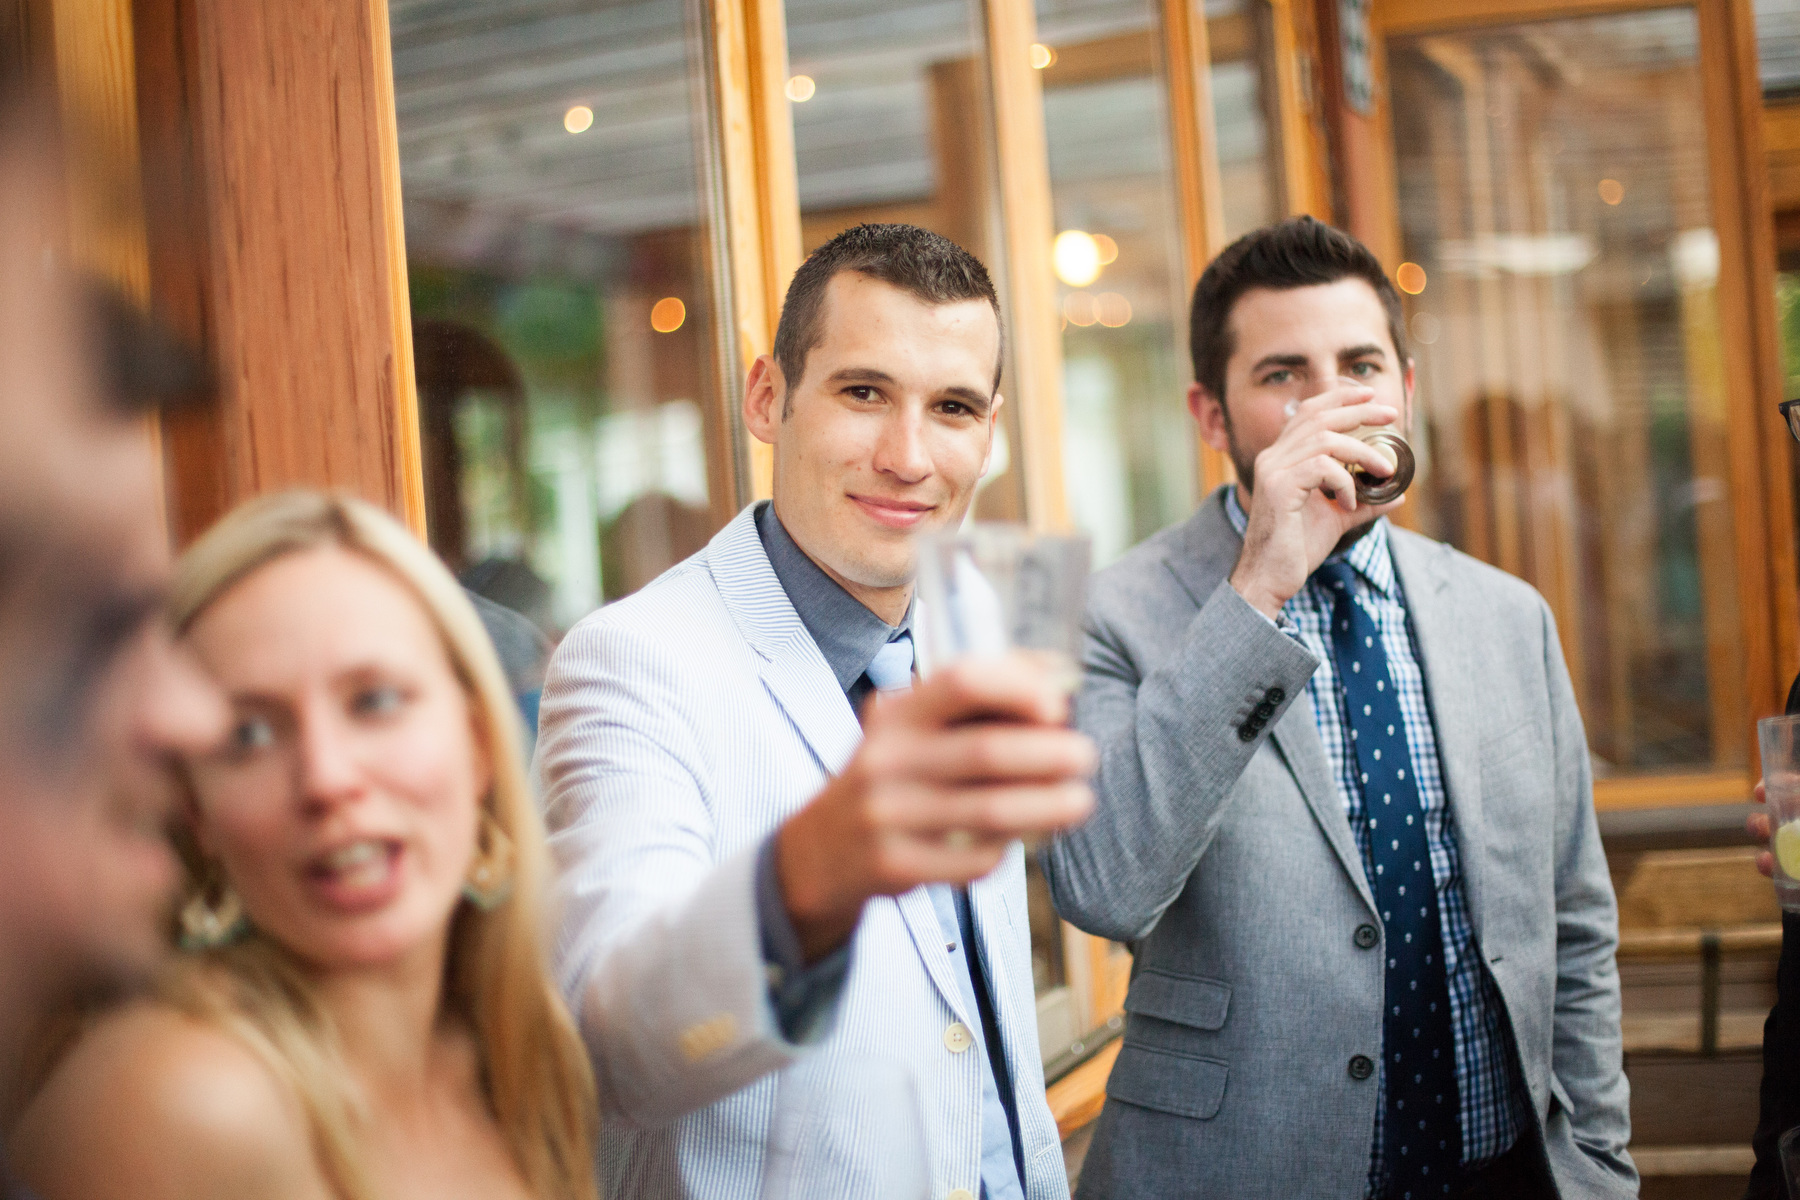 A man raises his glass during a wedding reception at The Local in Charlottesville, VA